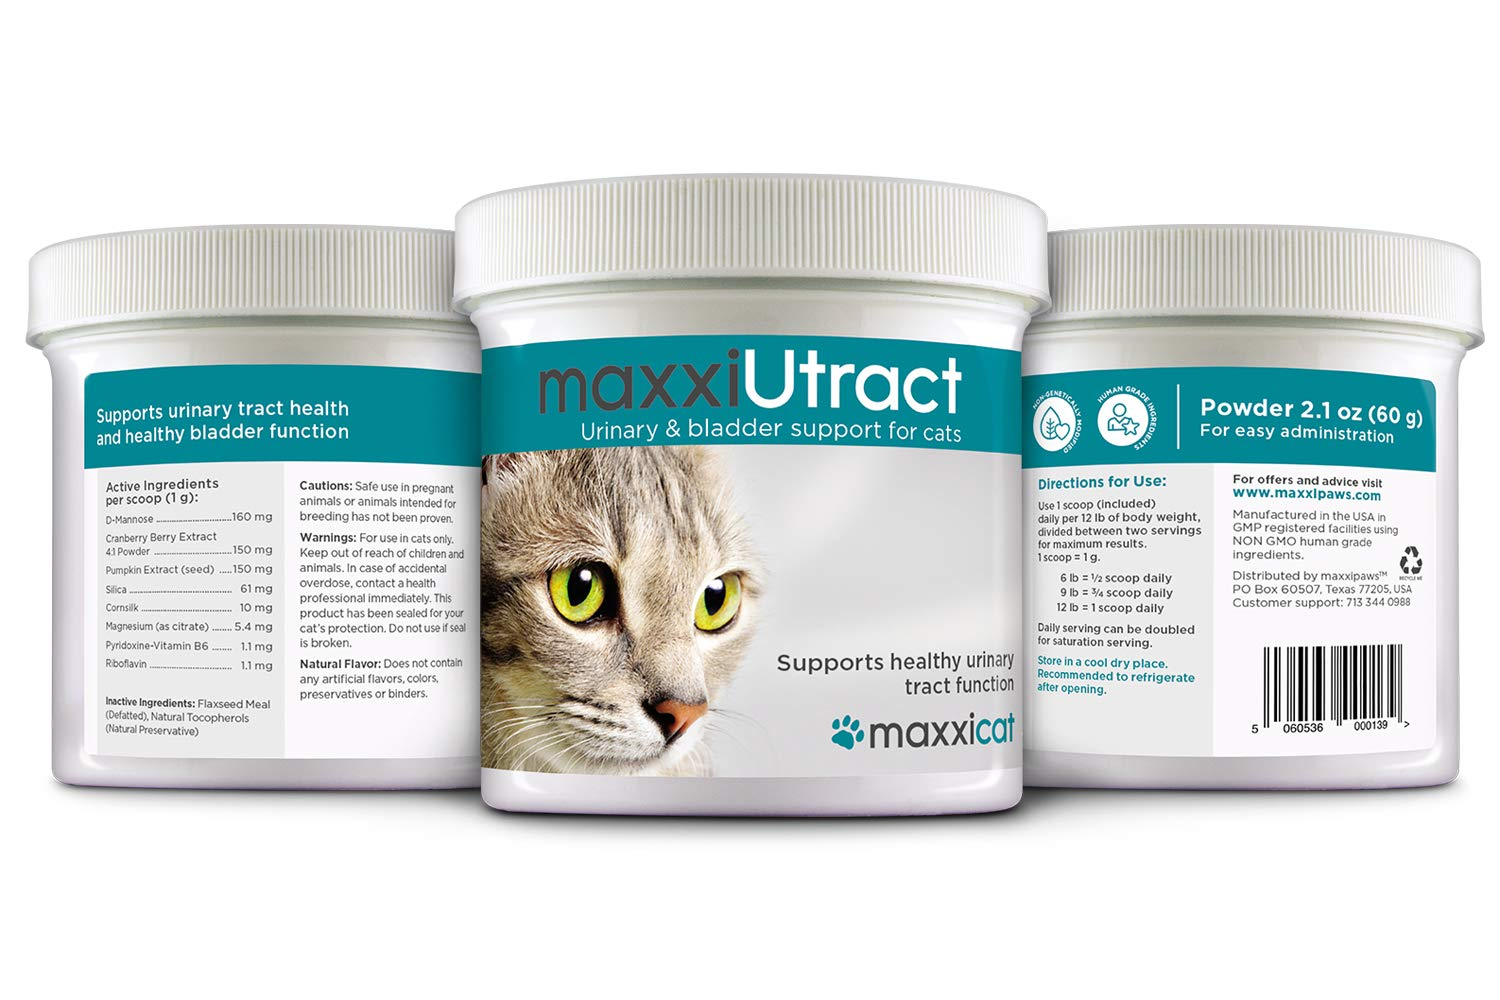 maxxicat – maxxiUtract Urinary and Bladder Supplement for Cats – Helps Prevent UTI Recurrence, Support Feline Bladder Control and Urinary Tract System Health – Cranberry Formula Powder 2.1 oz 8